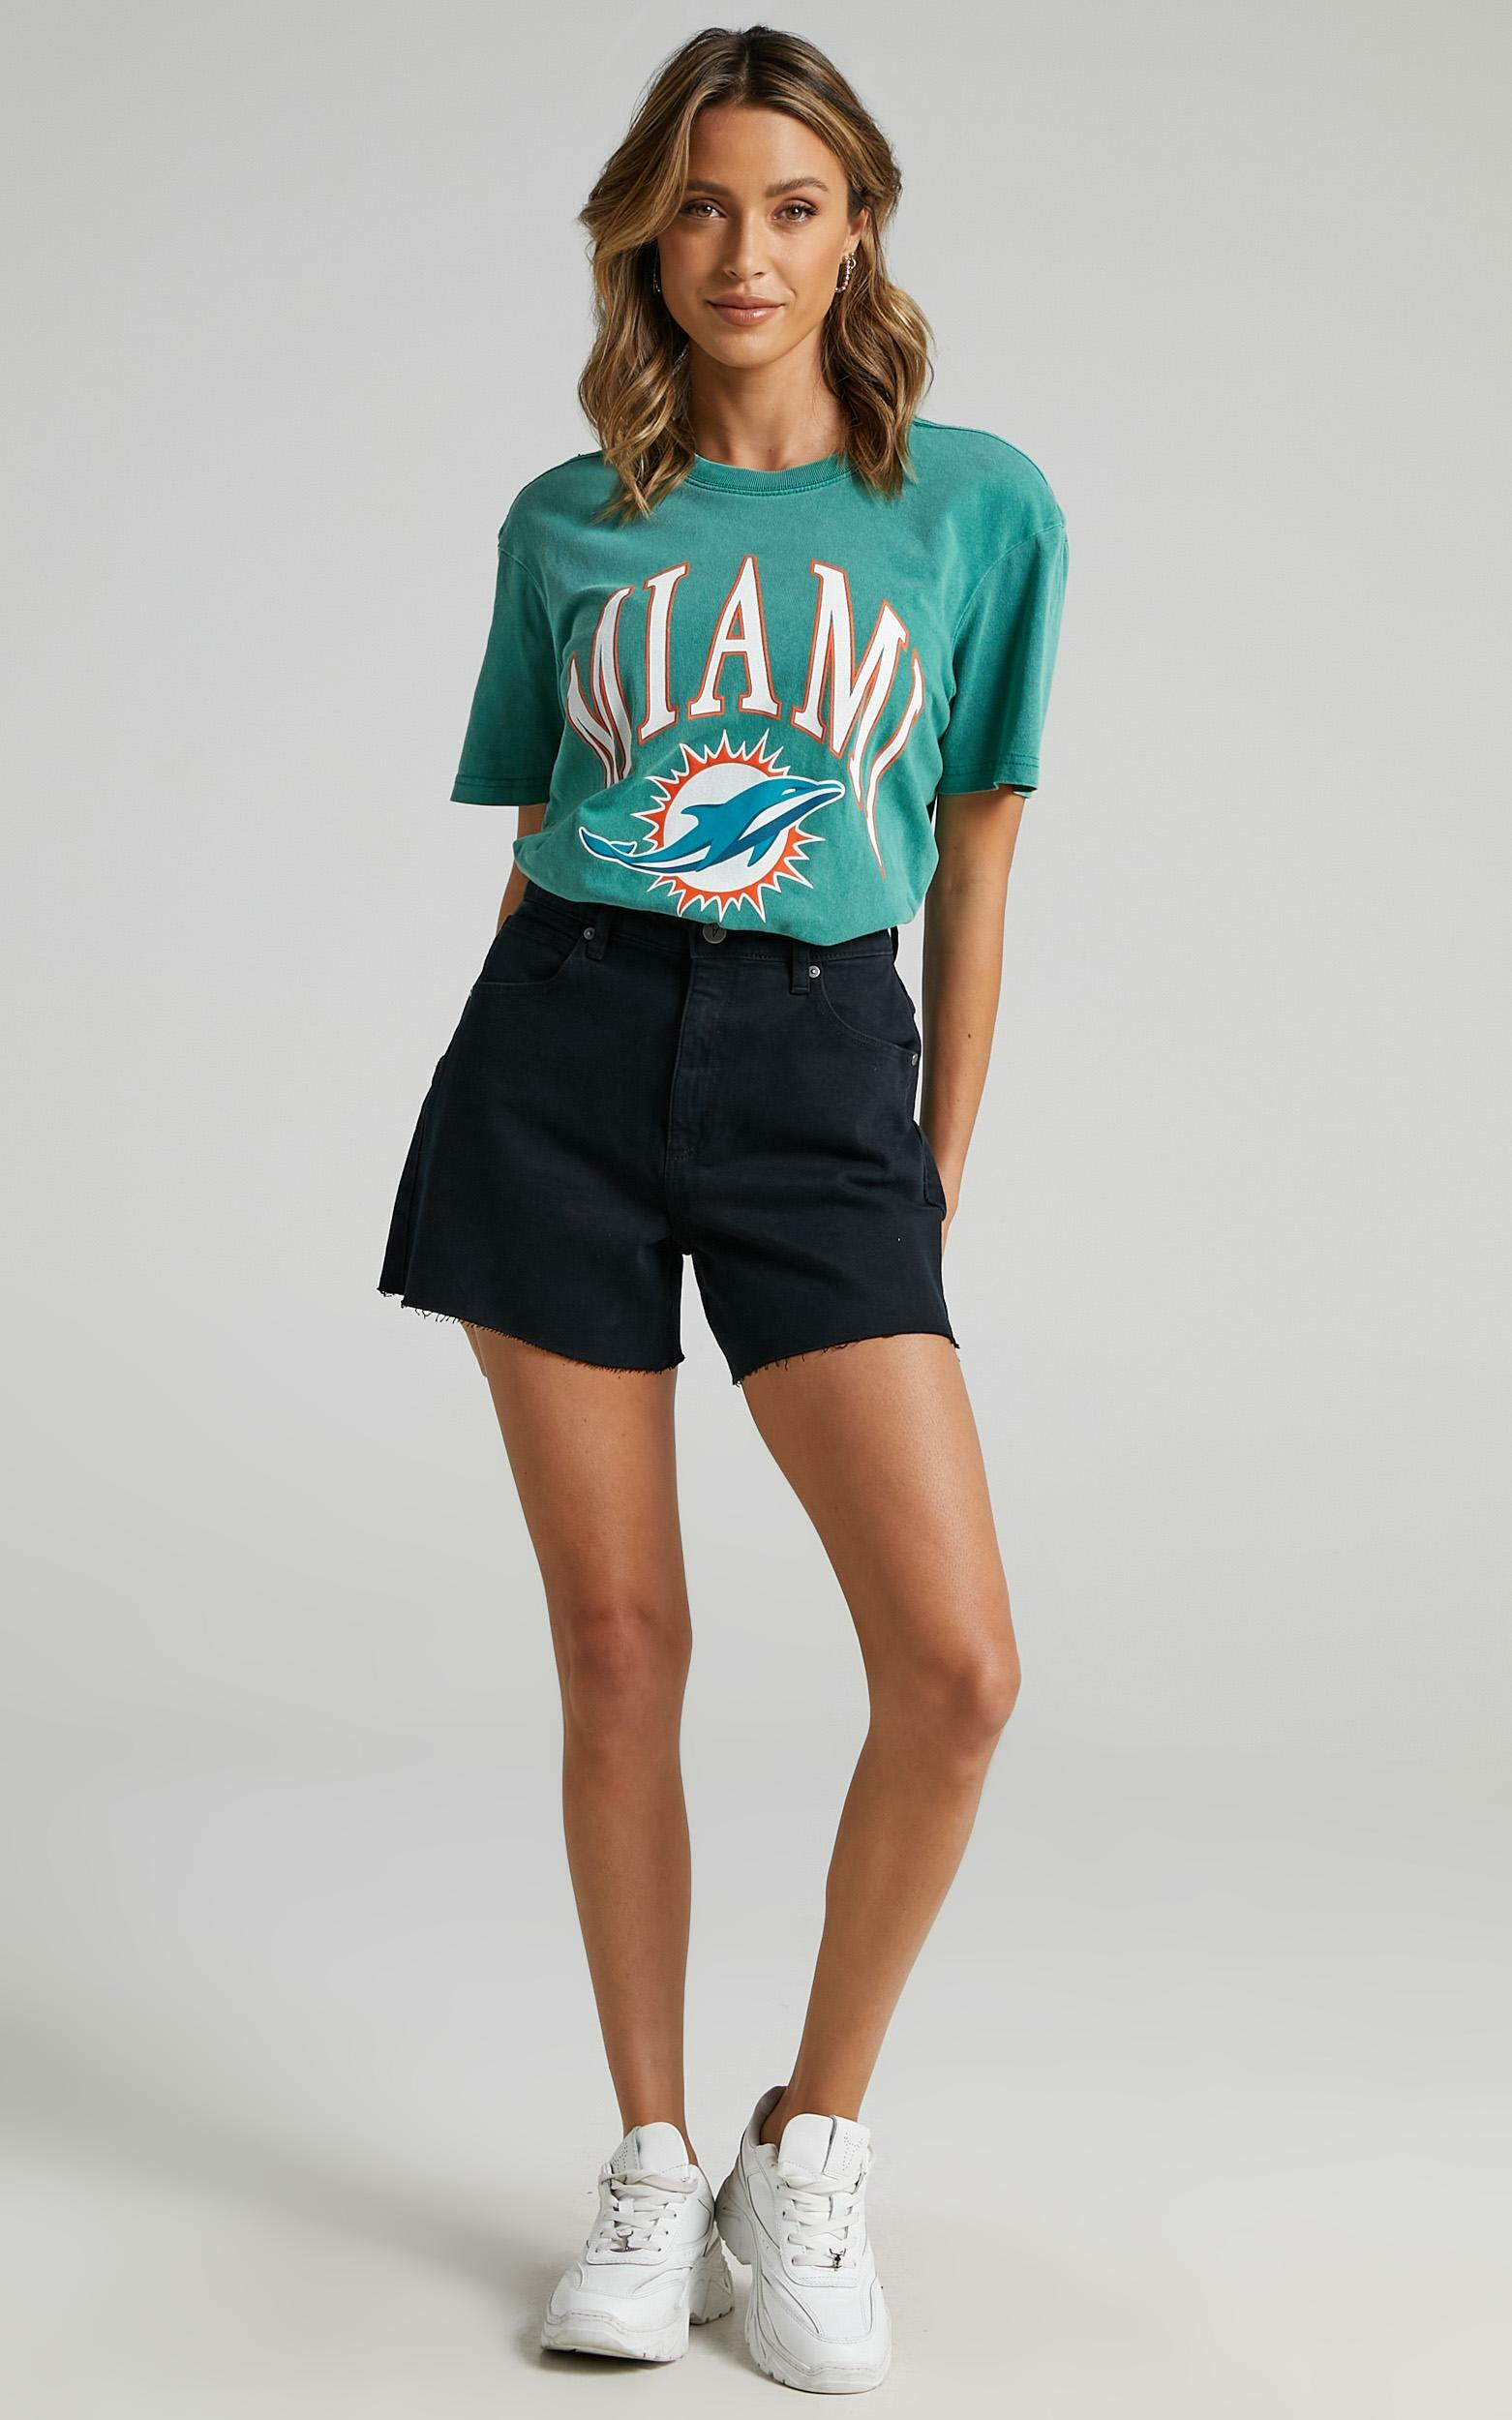 Abrand - A Venice Denim Short in Dead Of Night - 06, BLK1, hi-res image number null